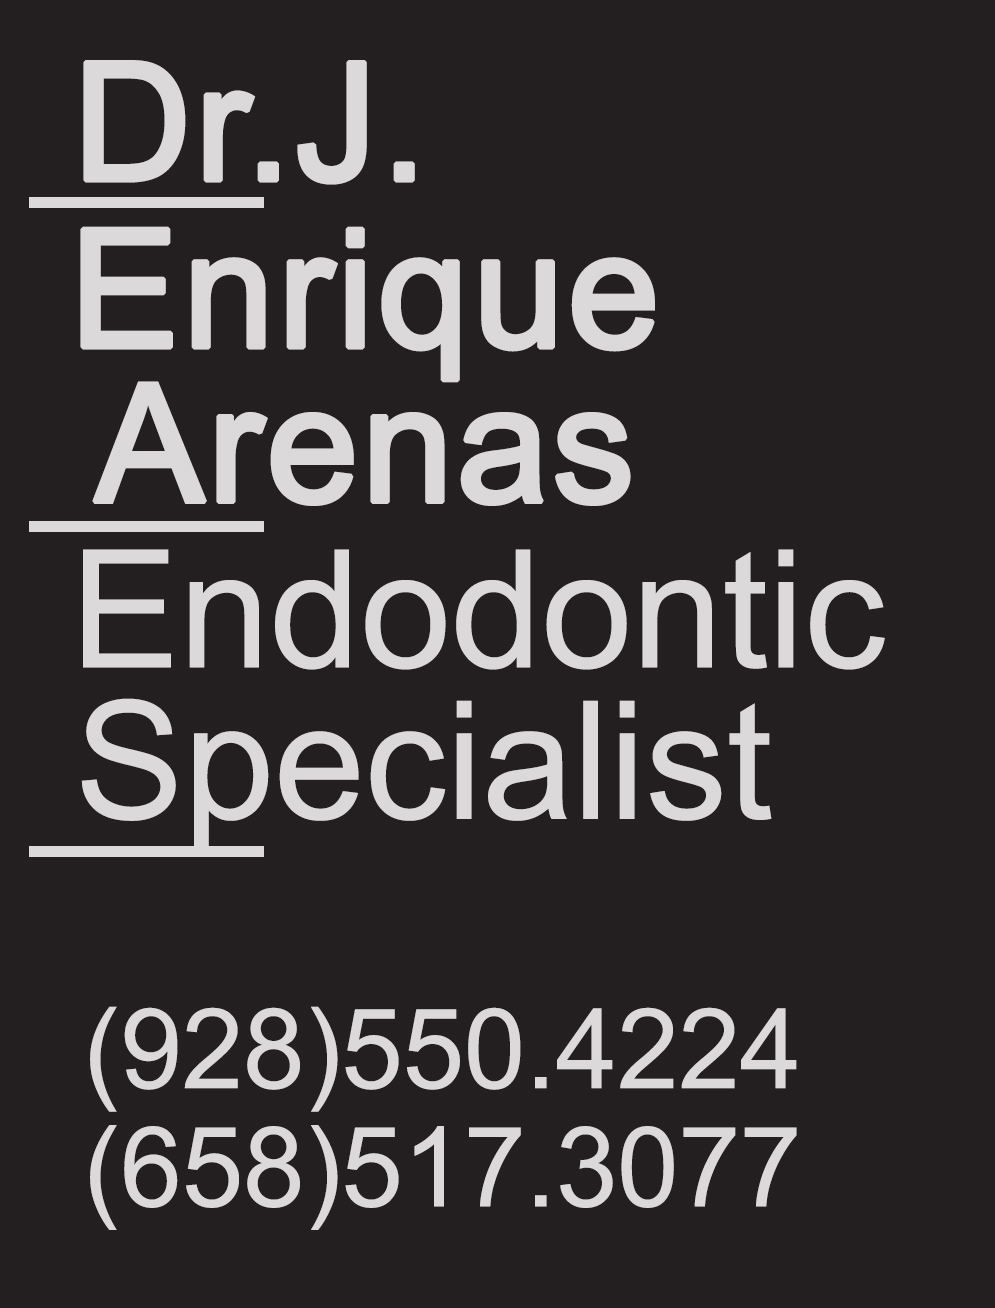 Dr. J. Enrique Arenas Endodontic Specialist  in Algodones  in Algodones  Endodontic Specialist  Endodontic Specialist